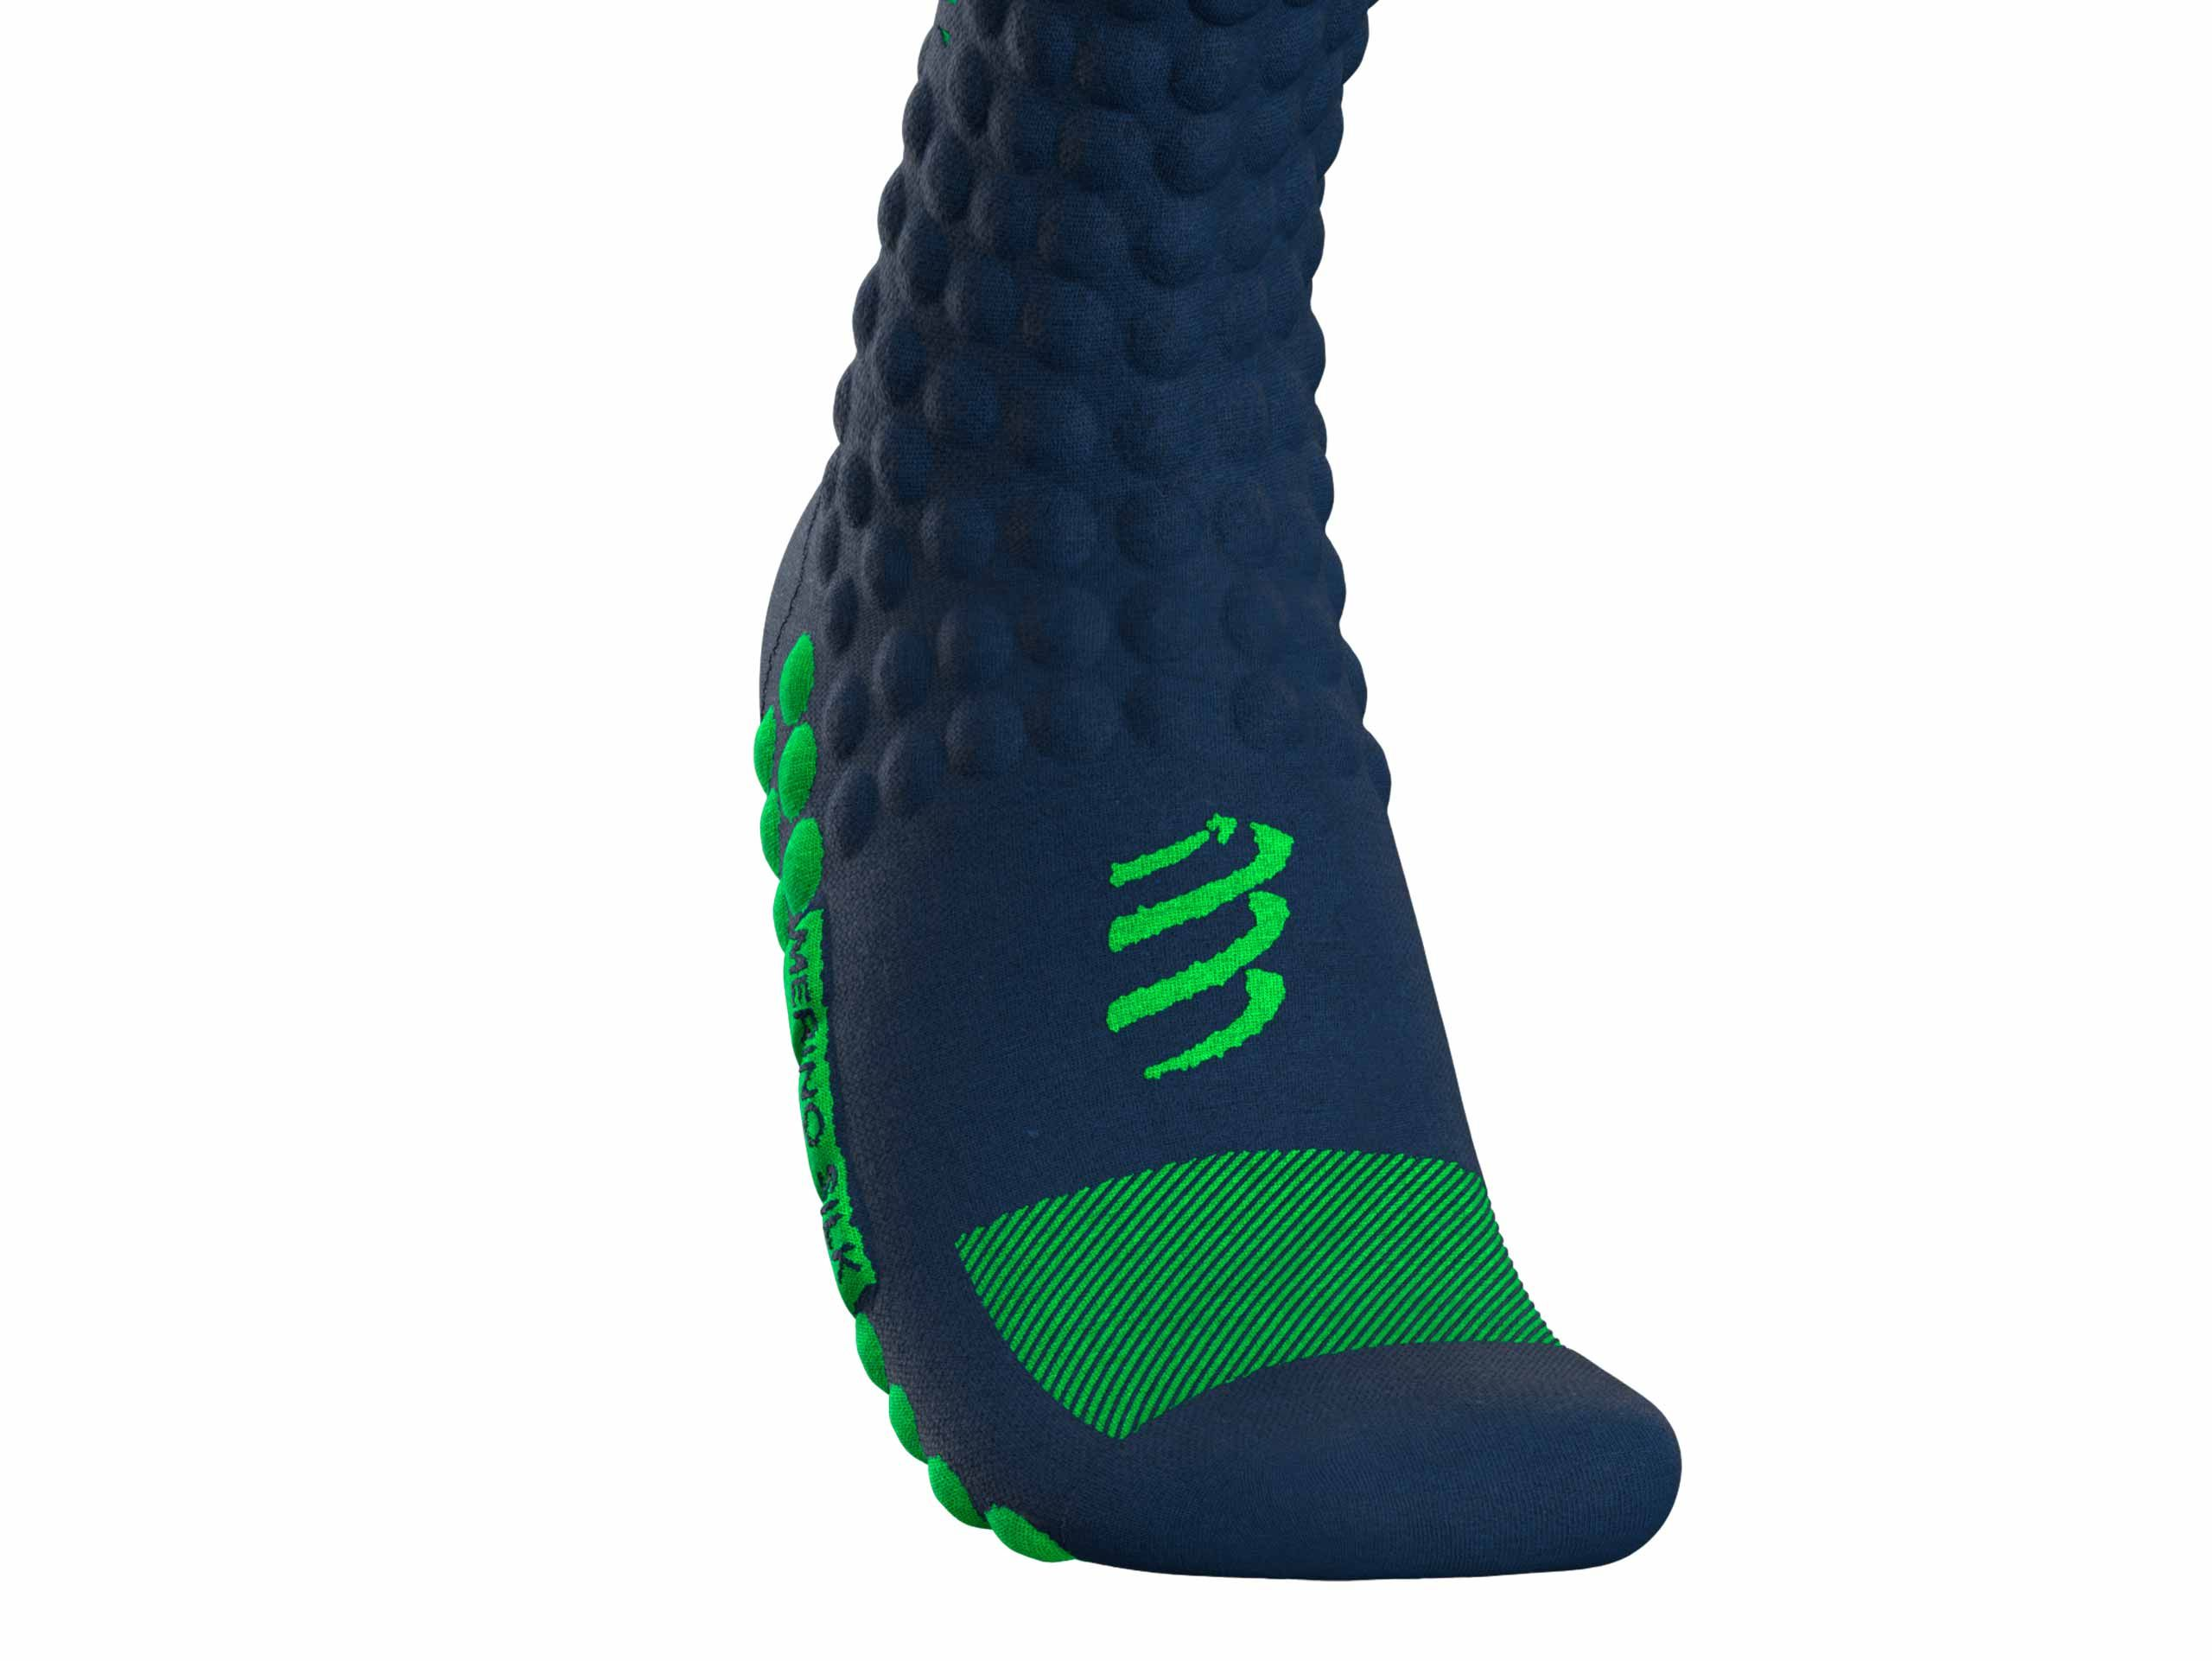 Skimo Full Socks BLUE/LIME